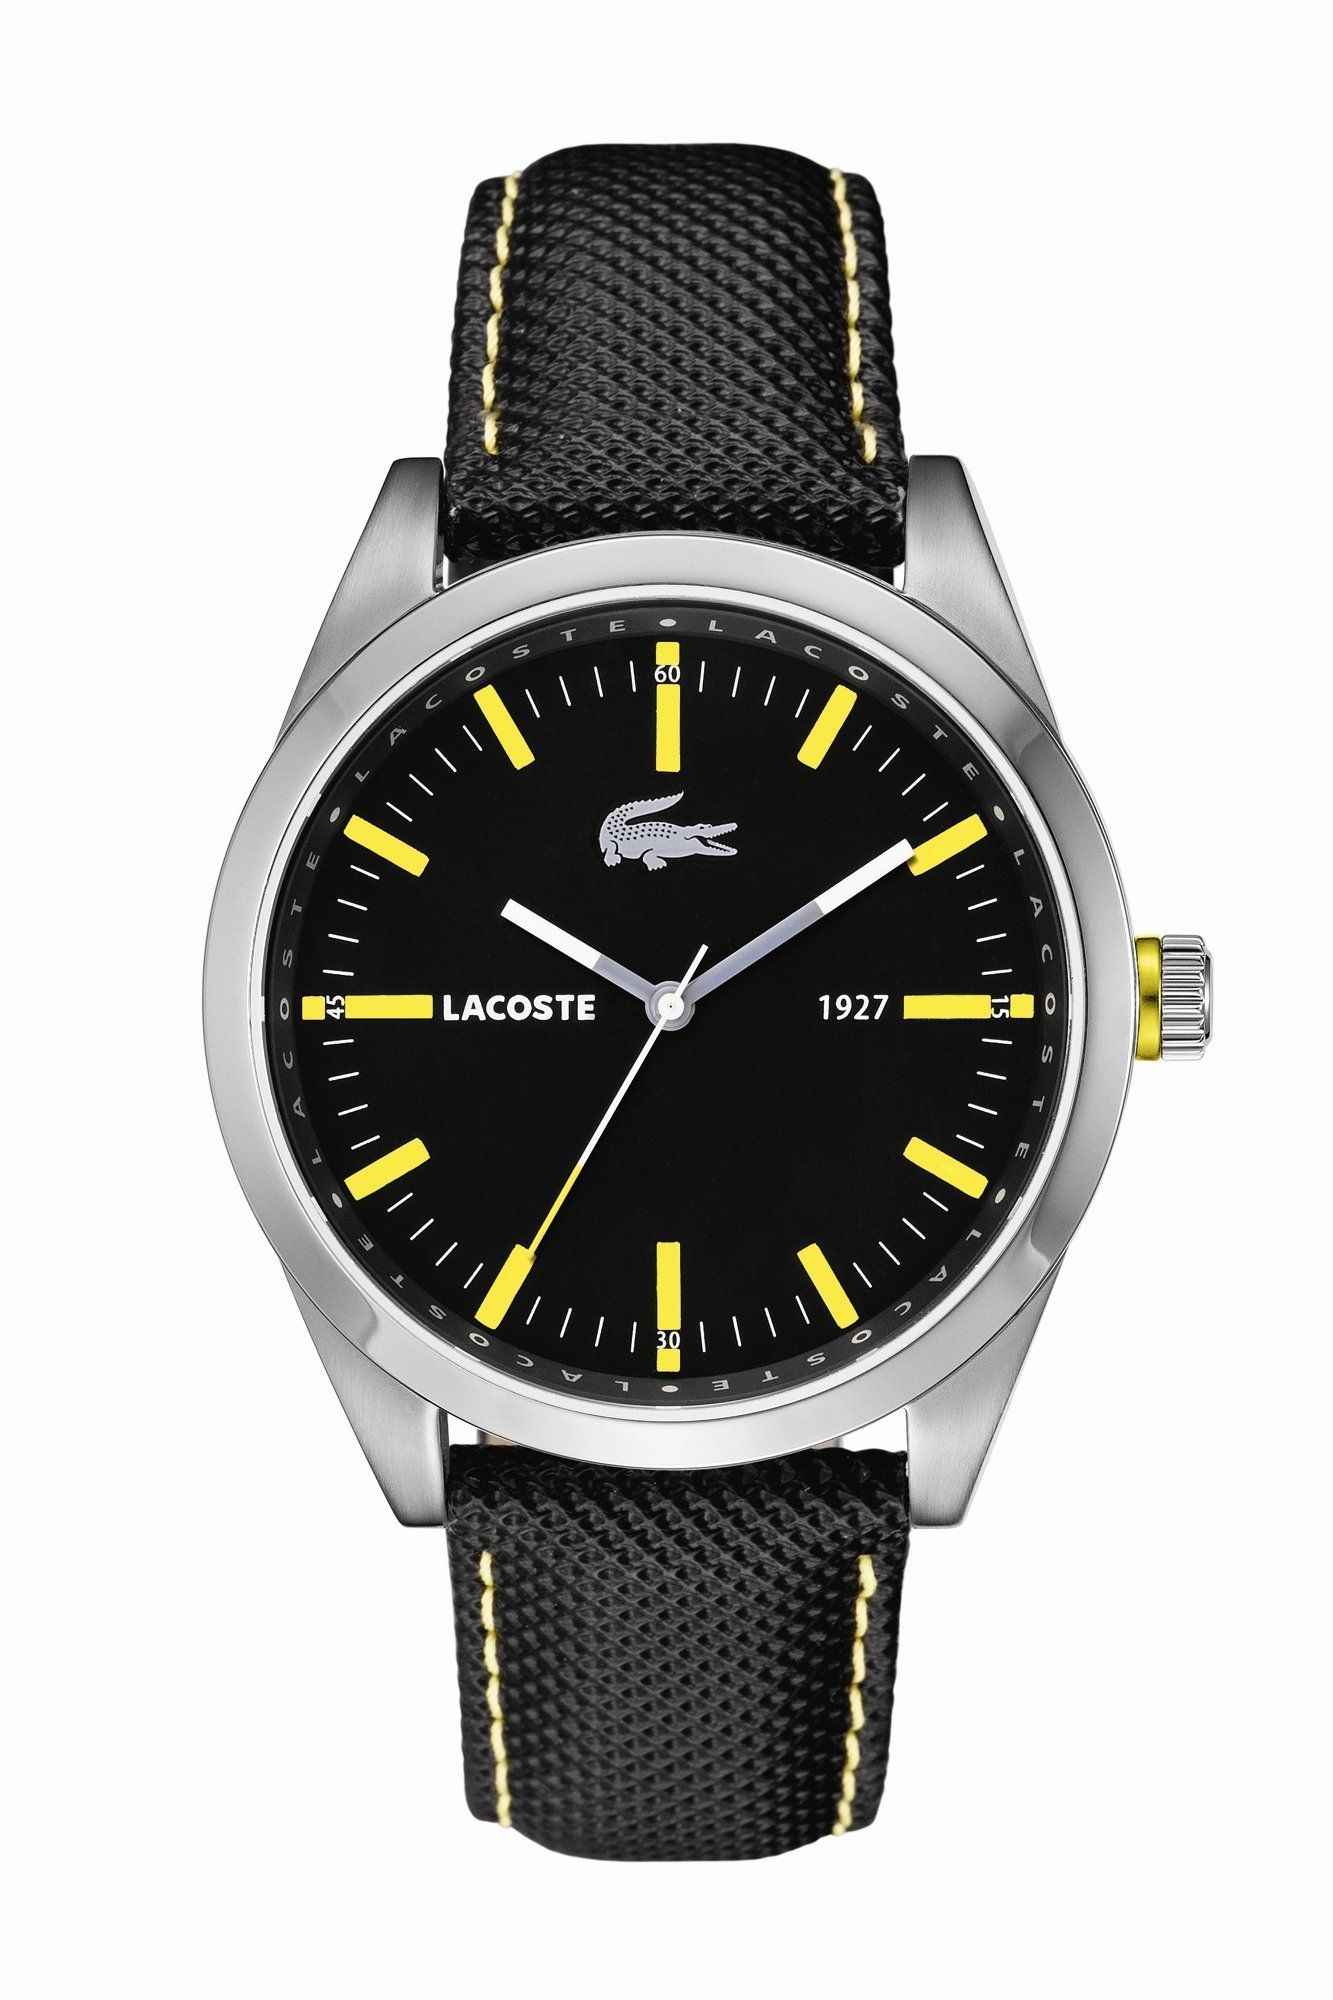 Lacoste P Watches for men, Fashion watches, Mens